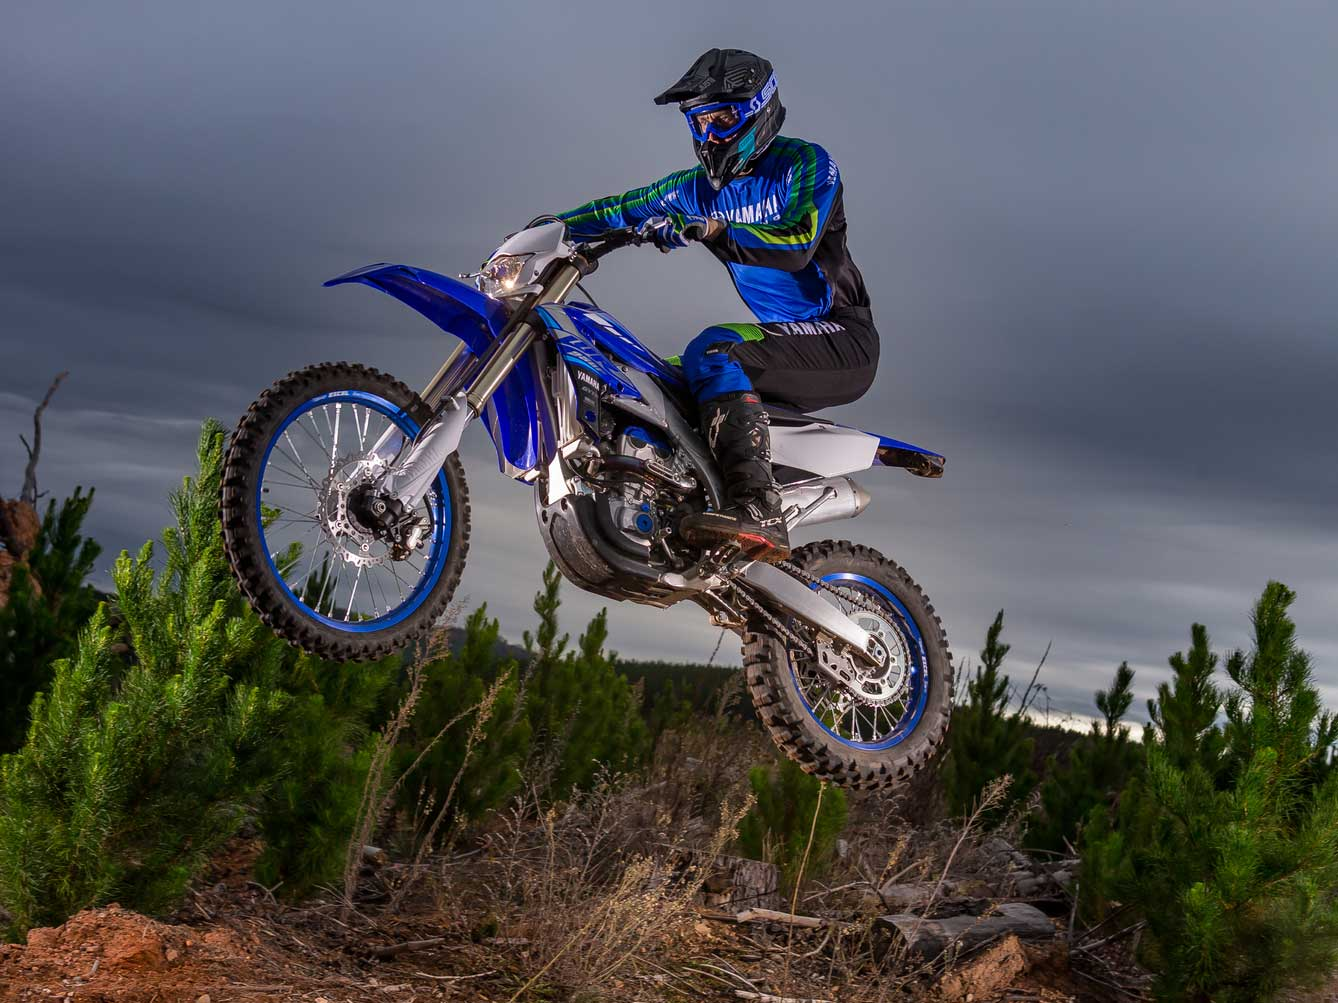 How To Dirt Bike Suspension Setup And Tuning | Dirt Rider